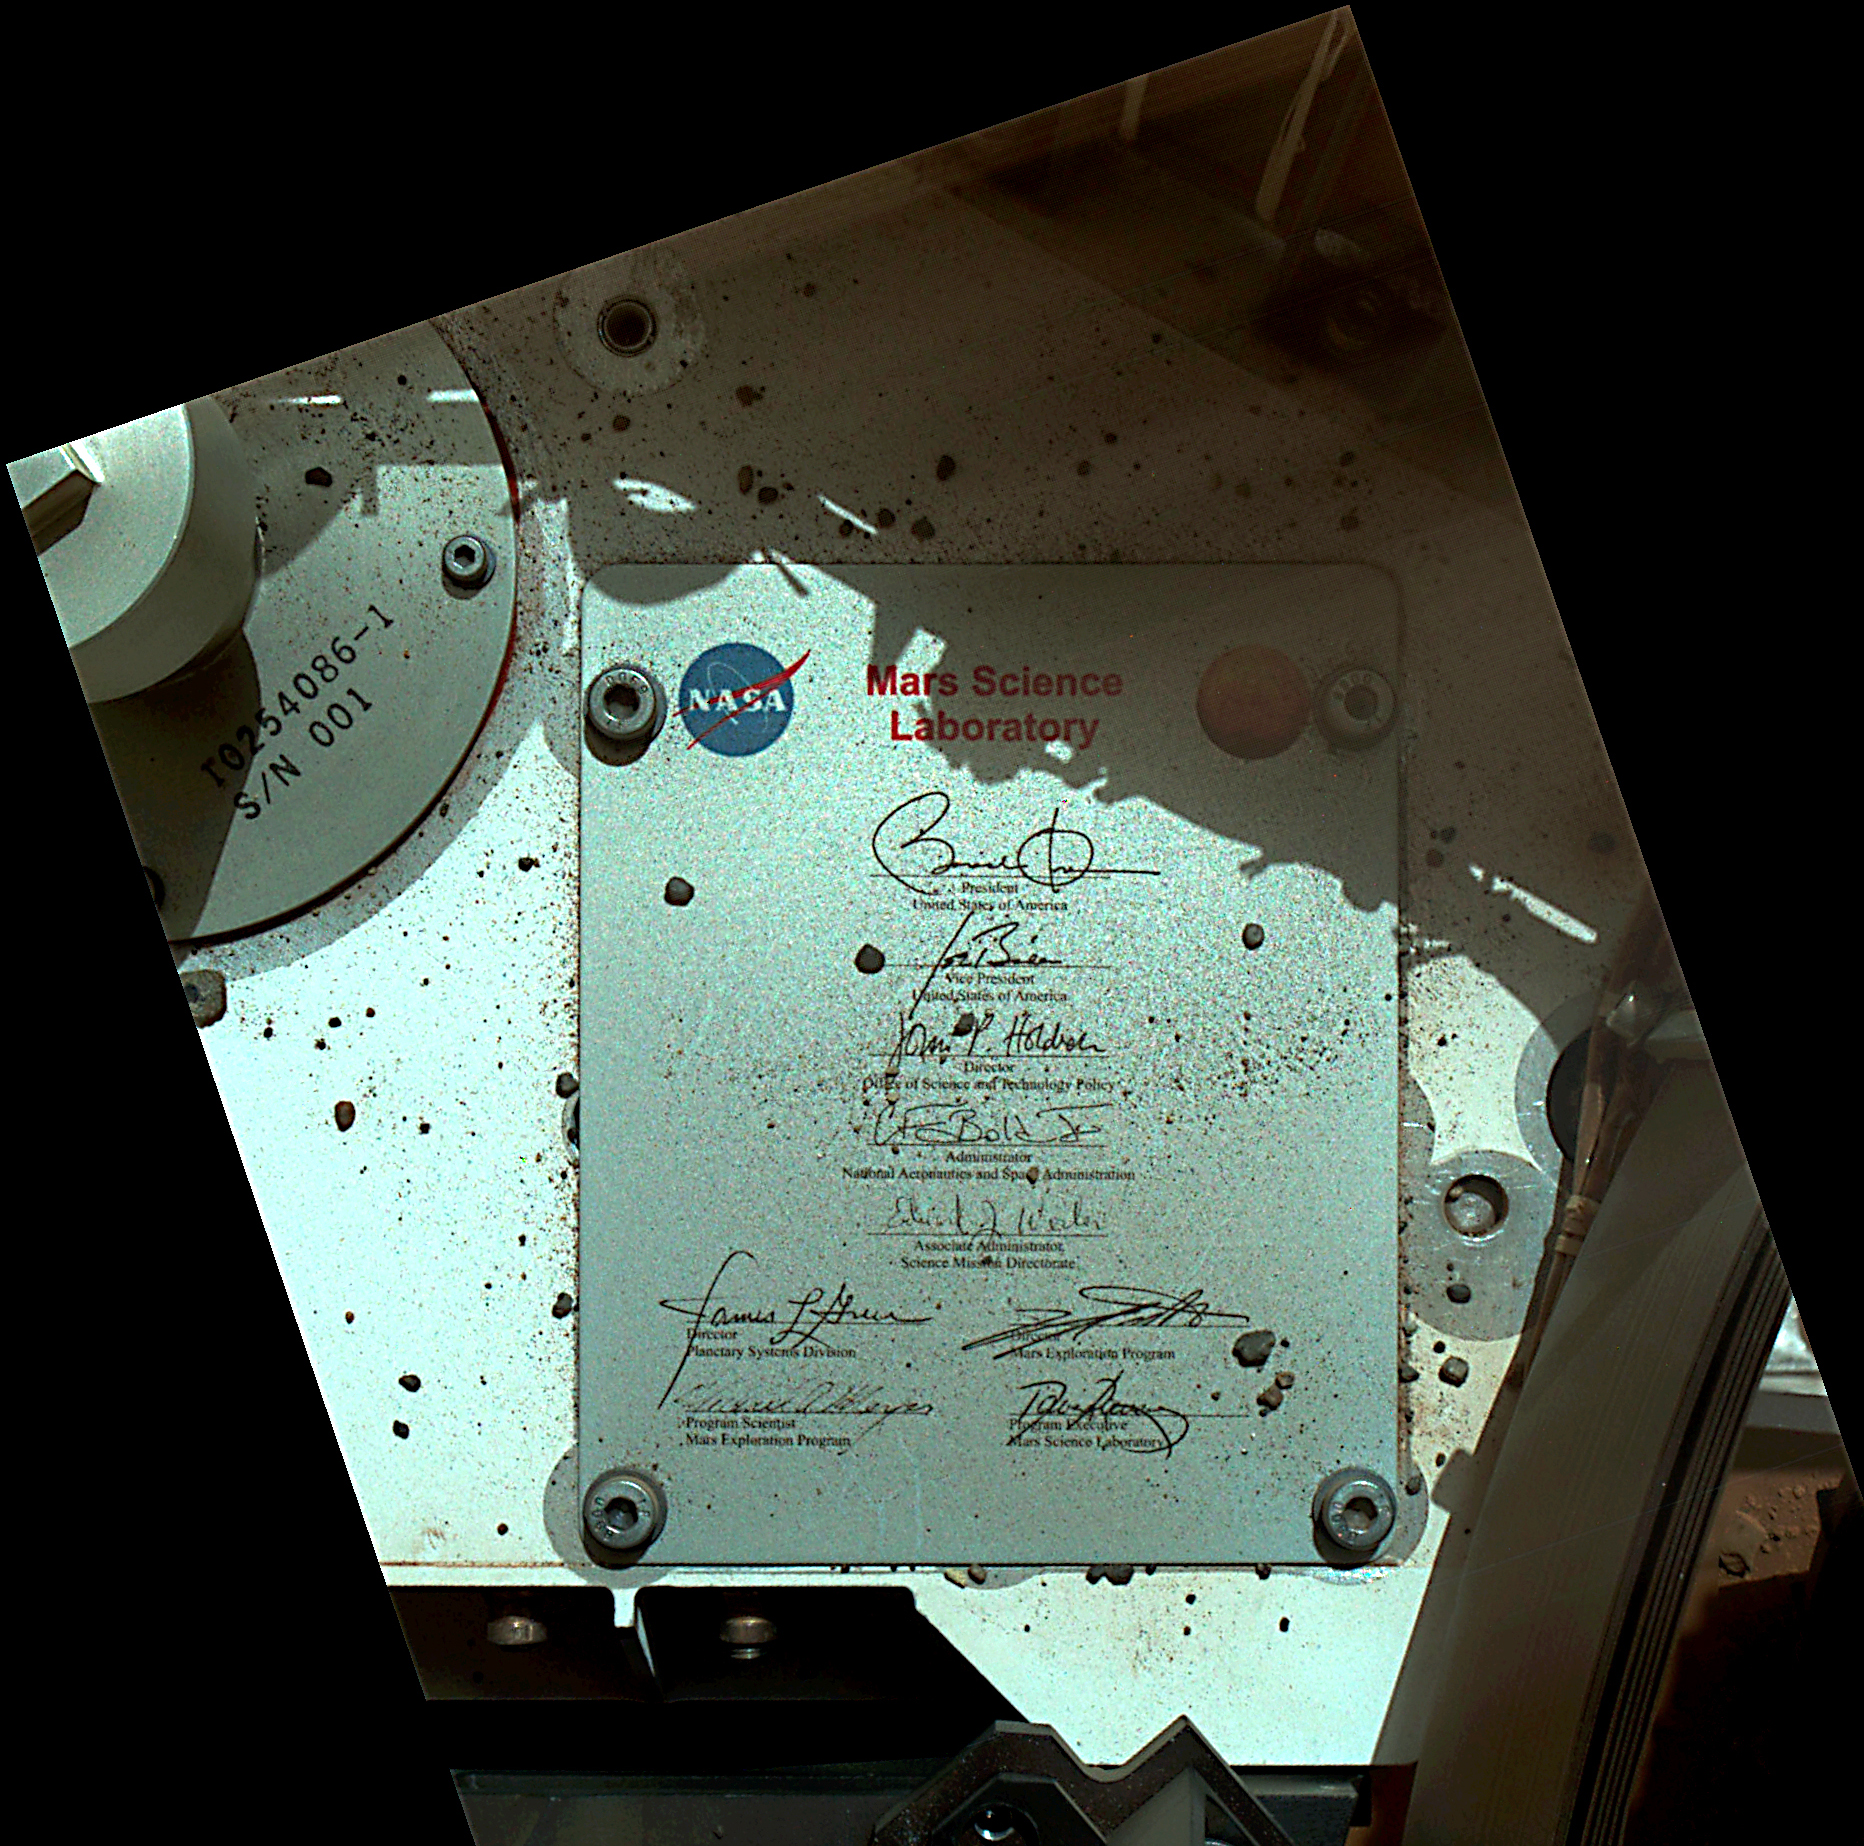 This view of Curiosity's deck shows a plaque bearing several signatures of US officials, including that of President Obama and Vice President Biden. The image was taken by the rover's Mars Hand Lens Imager (MAHLI) during the rover's 44th Martian day, or sol, on Mars (Sept. 19, 2012). The plaque is located on the front left side of the rover's deck.